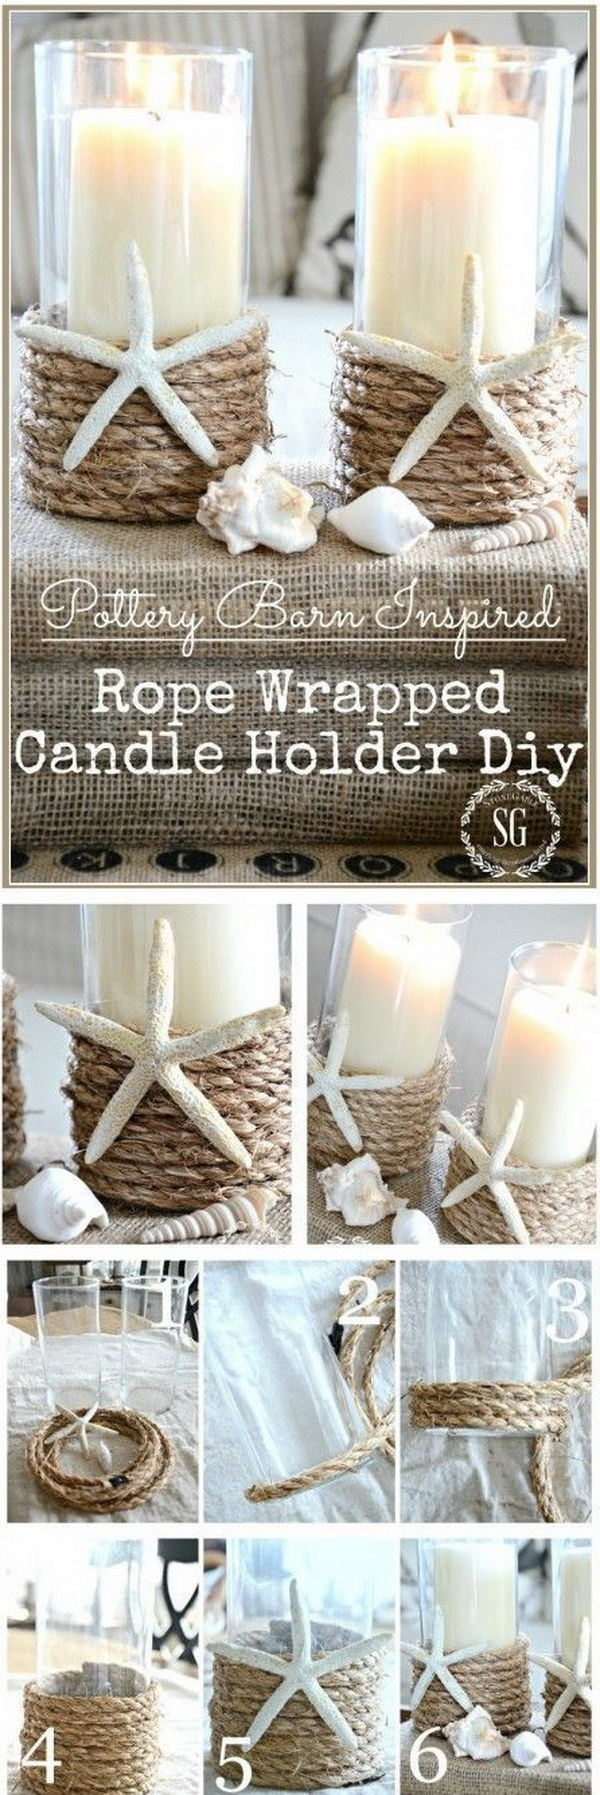 DIY Rope Wrapped Candle Holder.